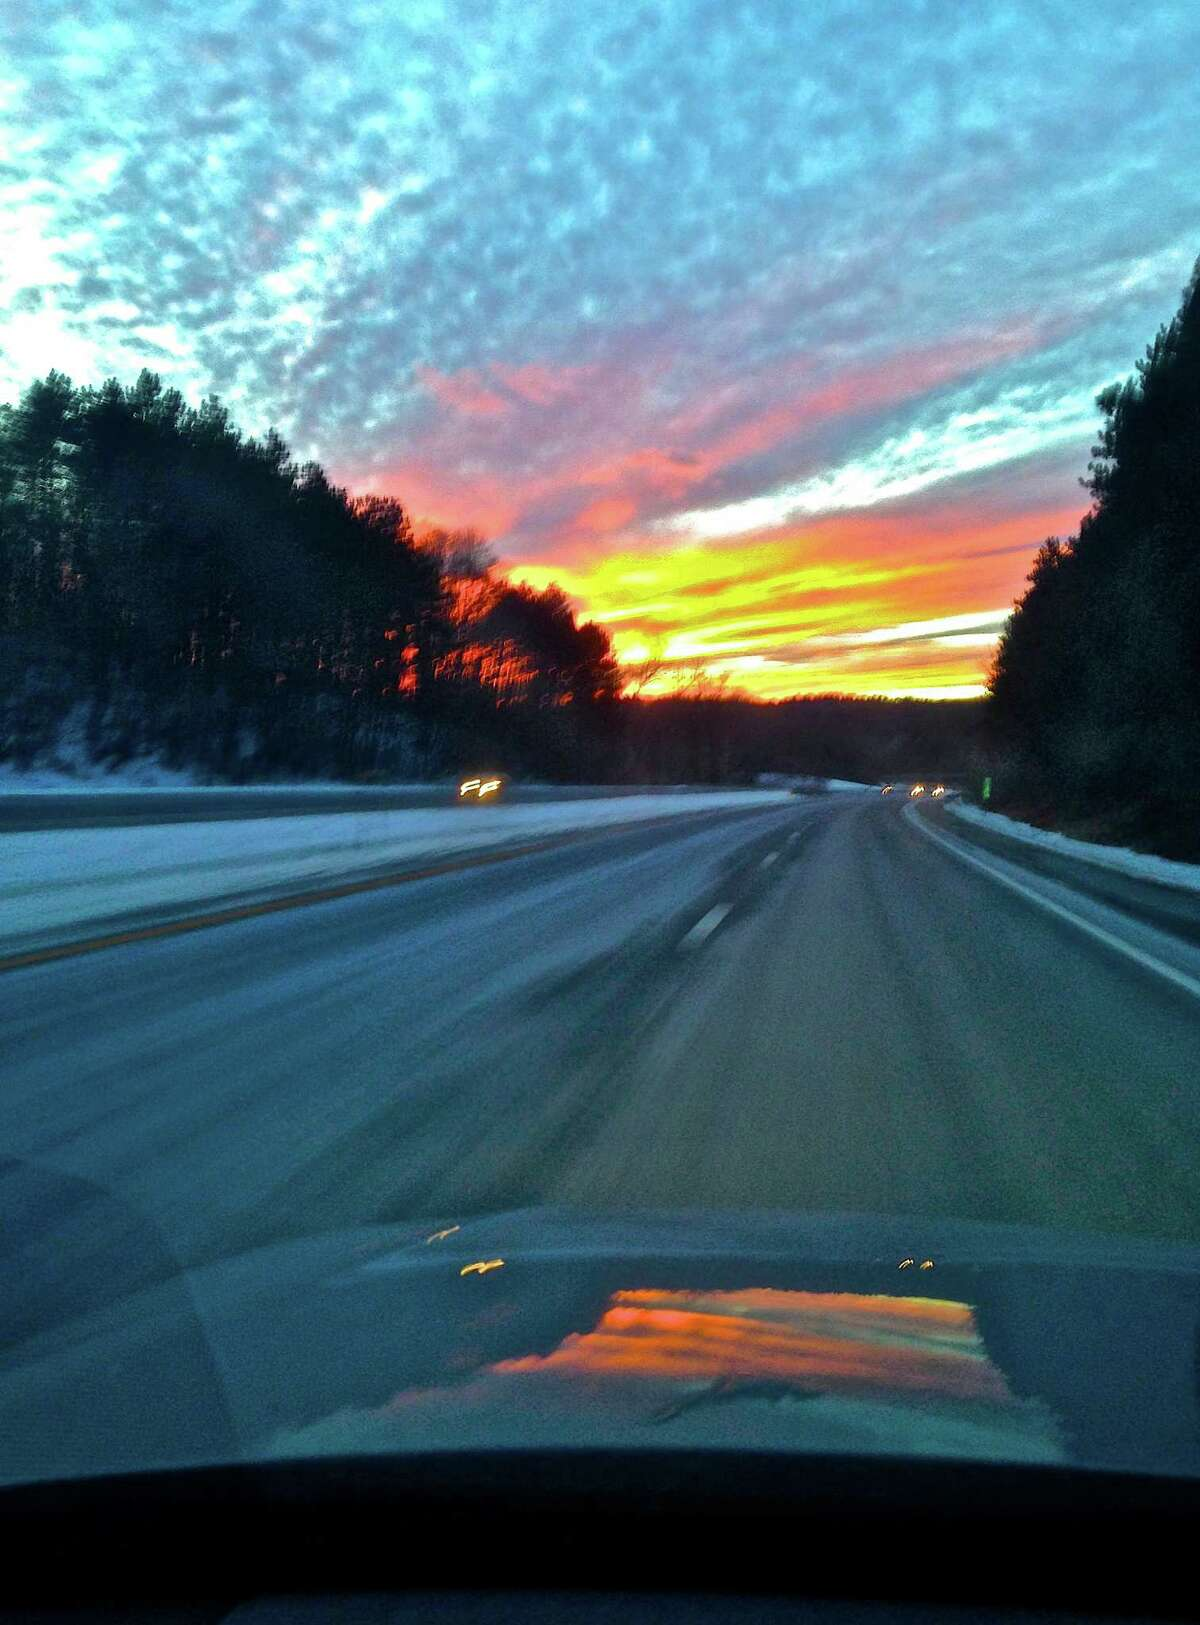 """""""Driving on the Merritt Parkway,"""" by Stamford resident Karen Kalkstein, is part of a new cell phone photography exhibit in Danbury. """"Mobile Pics CT 2015"""" is on view through Sept. 25 at the Gallery at Still River Editions."""